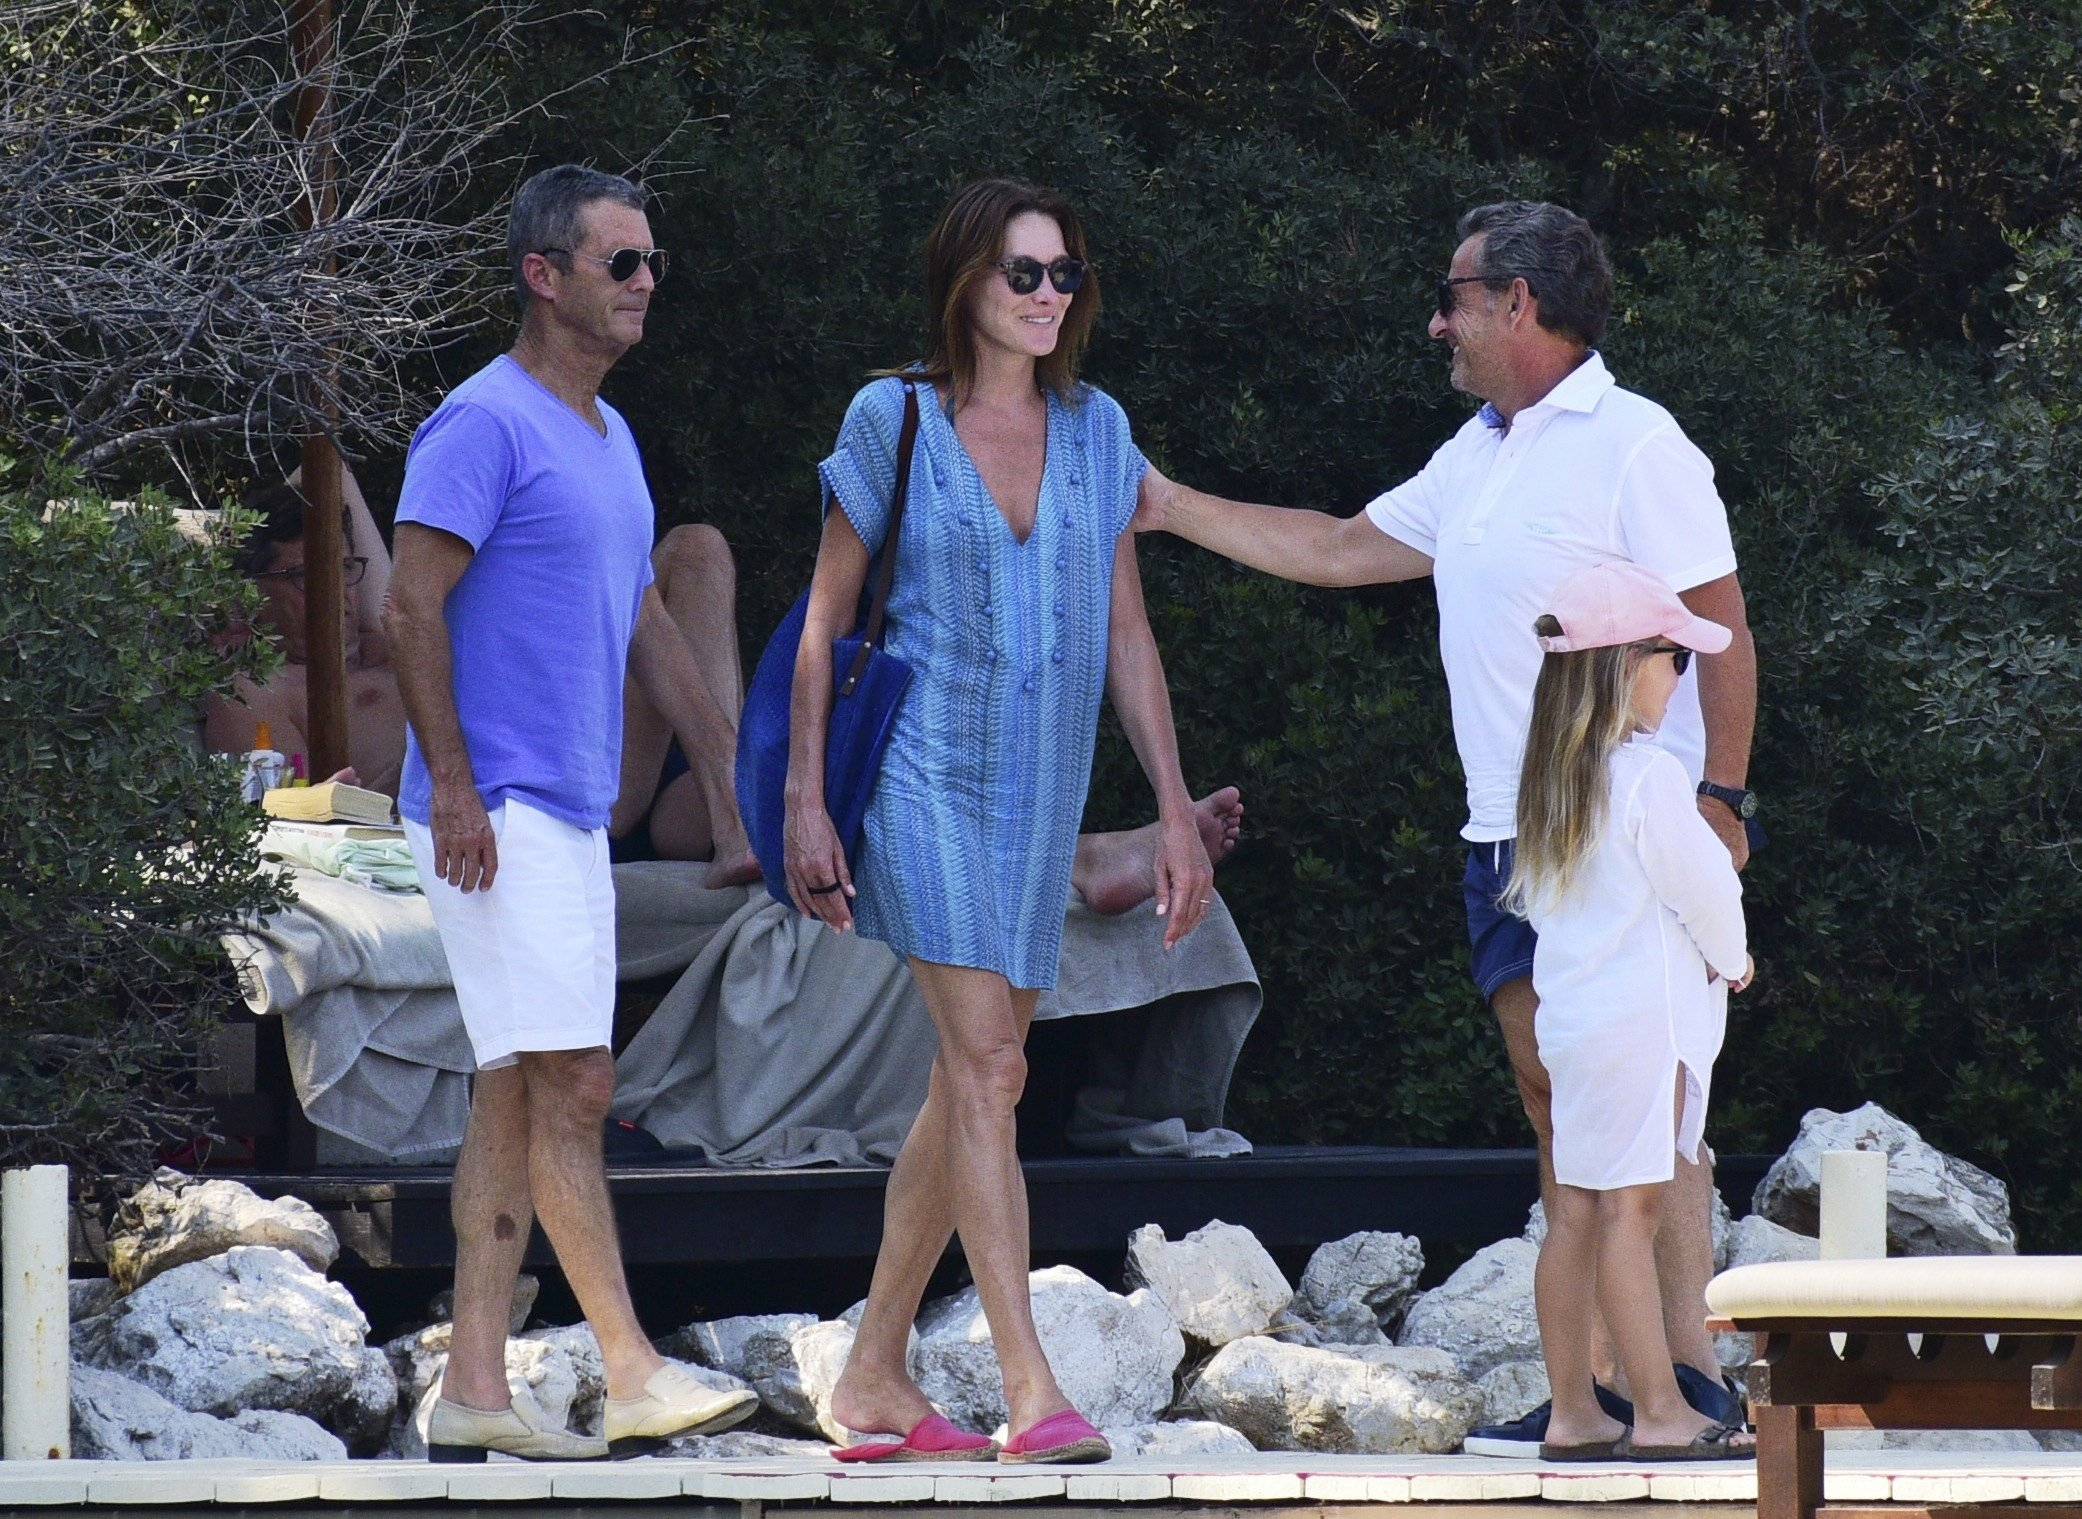 France's former President Nikolas Sarkozy, right, accompanied by his wife Carla Bruni-Sarkozy, centre, and other members of their family and friends enjoy their holidays near the coastal city of Bodrum, western Turkey Monday, Aug. 20, 2018. (AP Photo)